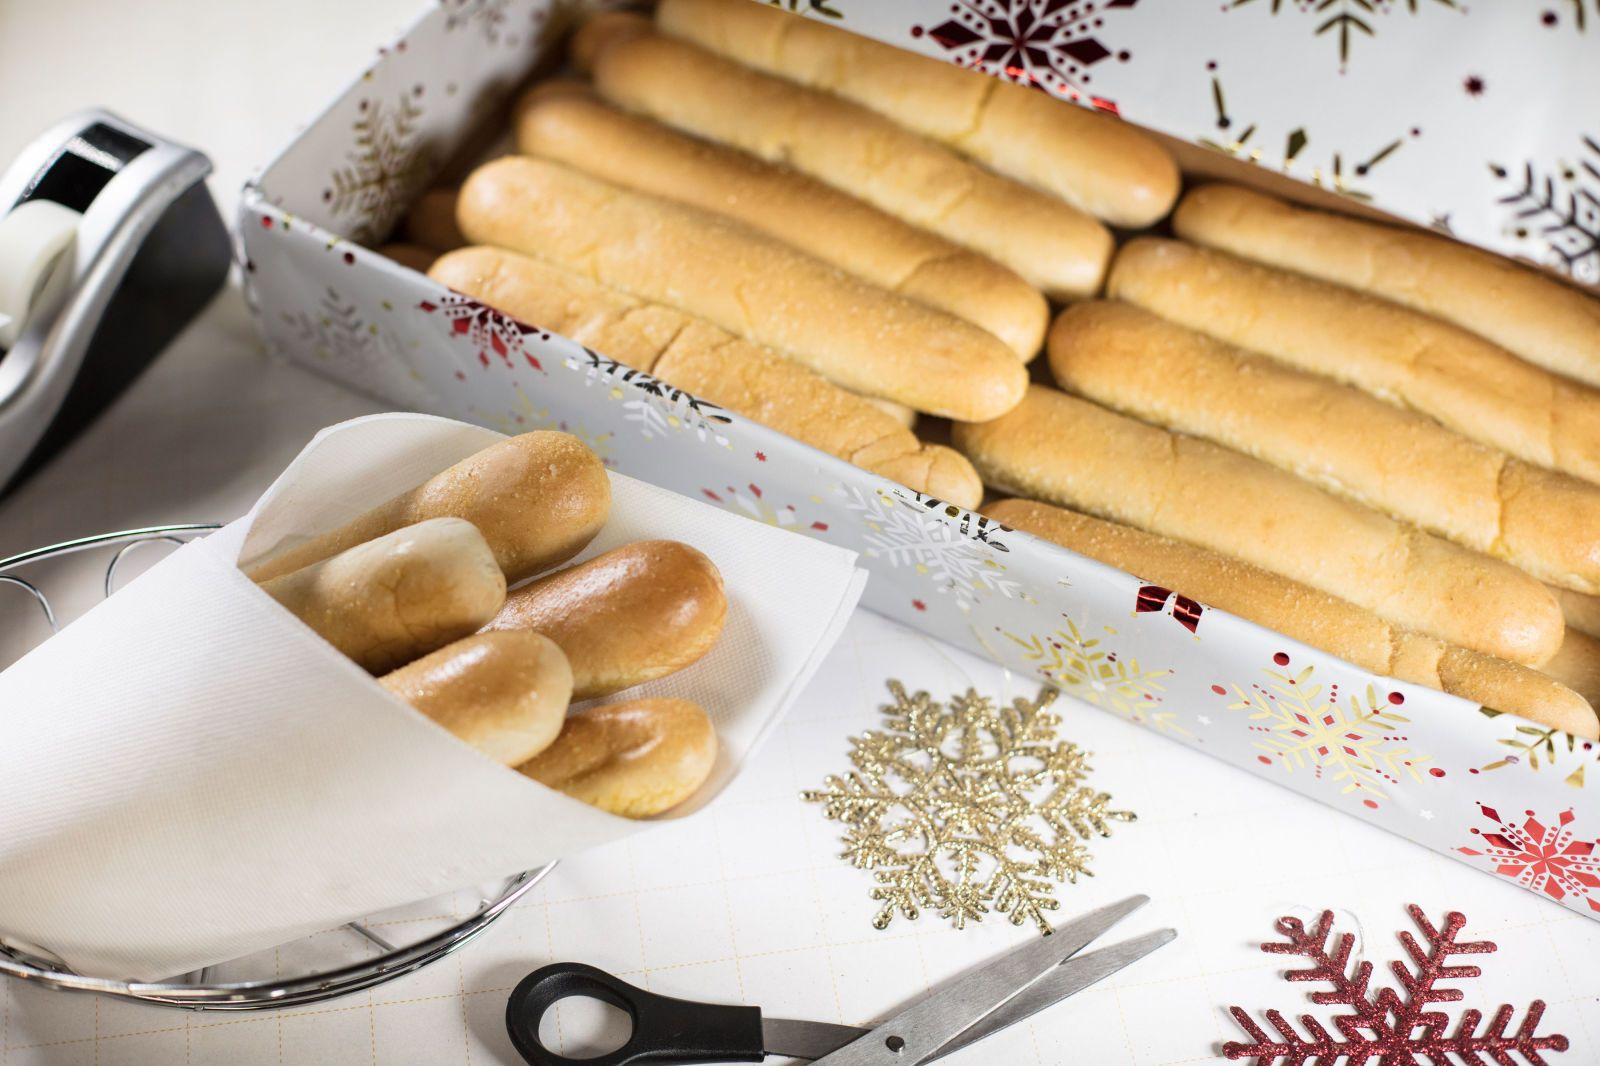 olive garden wants you to give the gift of breadsticks this year food holiday christmas shopping gifts wishlist ideas inspiration forkyeah - Olive Garden Christmas Hours